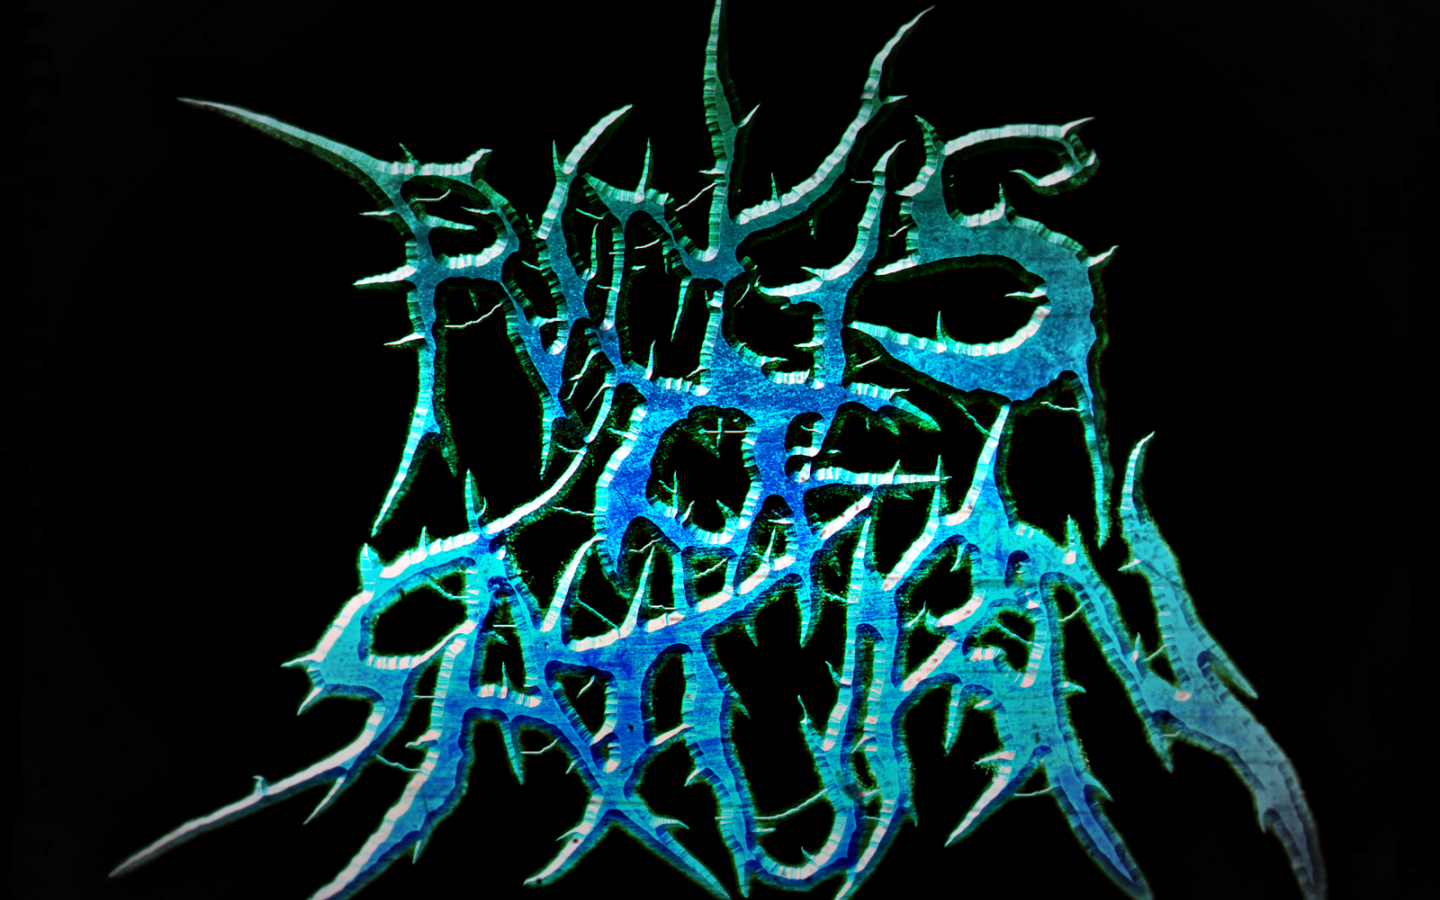 Free Download Rings Of Saturn By Diishonor 1600x1067 For Your